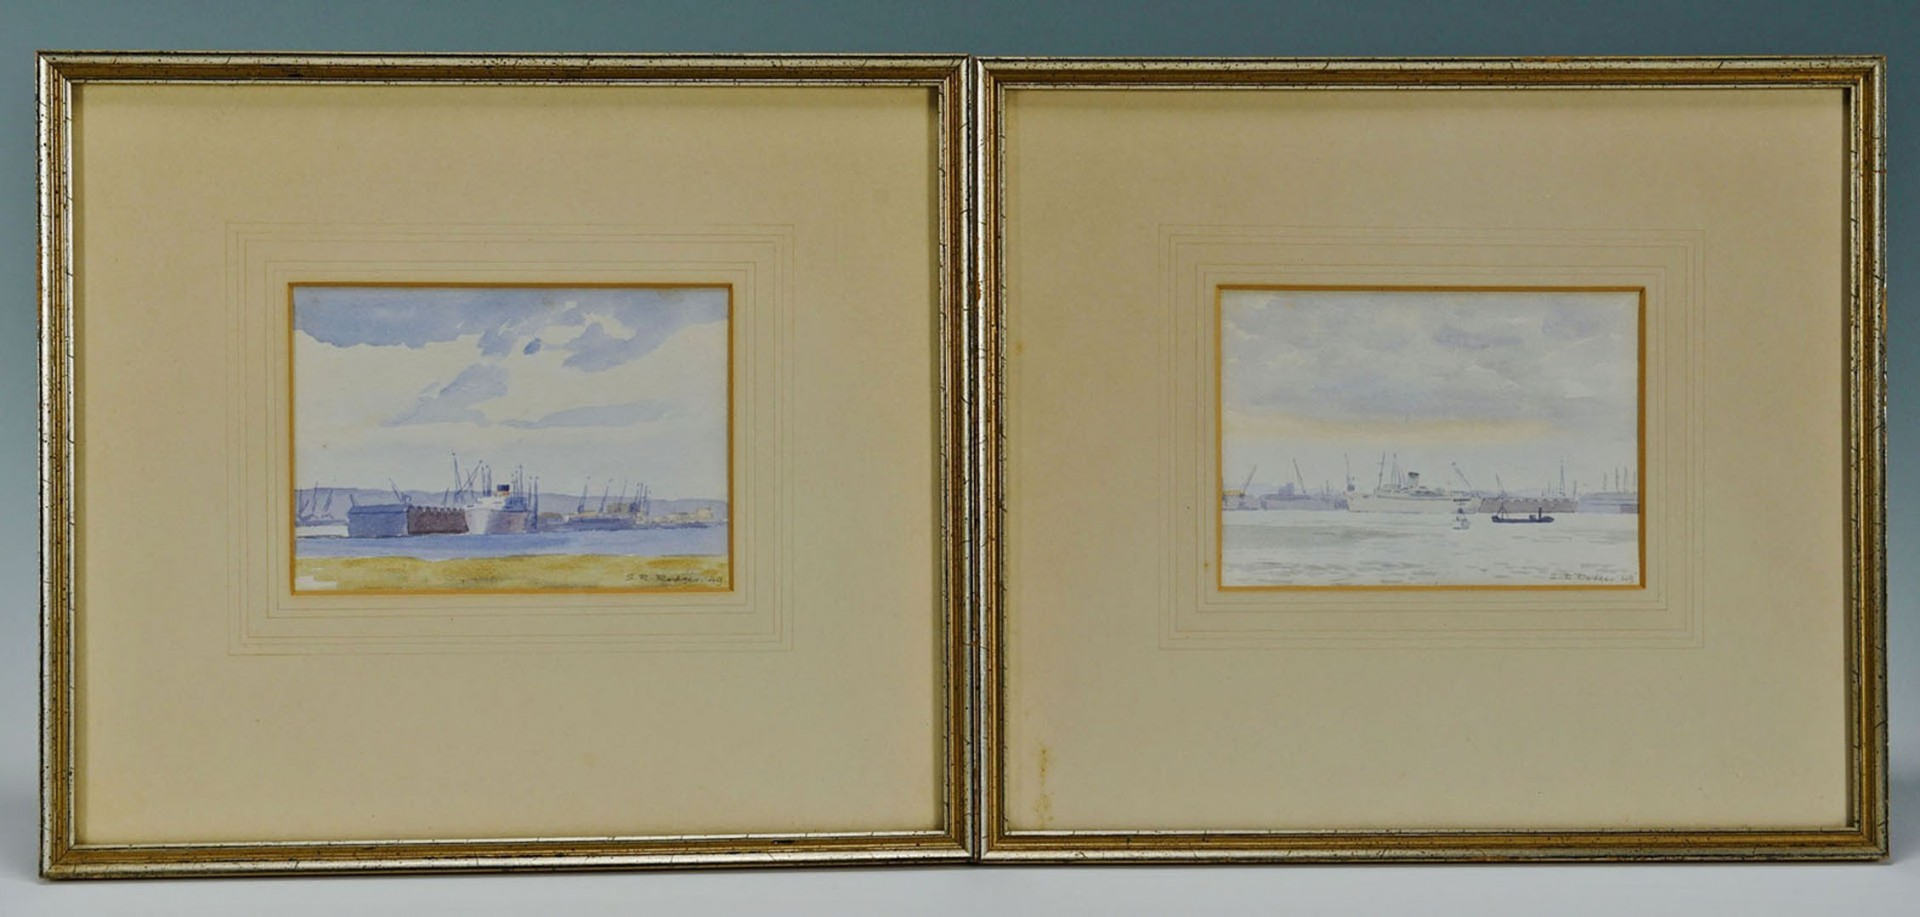 Lot 2872255: Pair of Nautical Watercolors signed S. R. Rodger